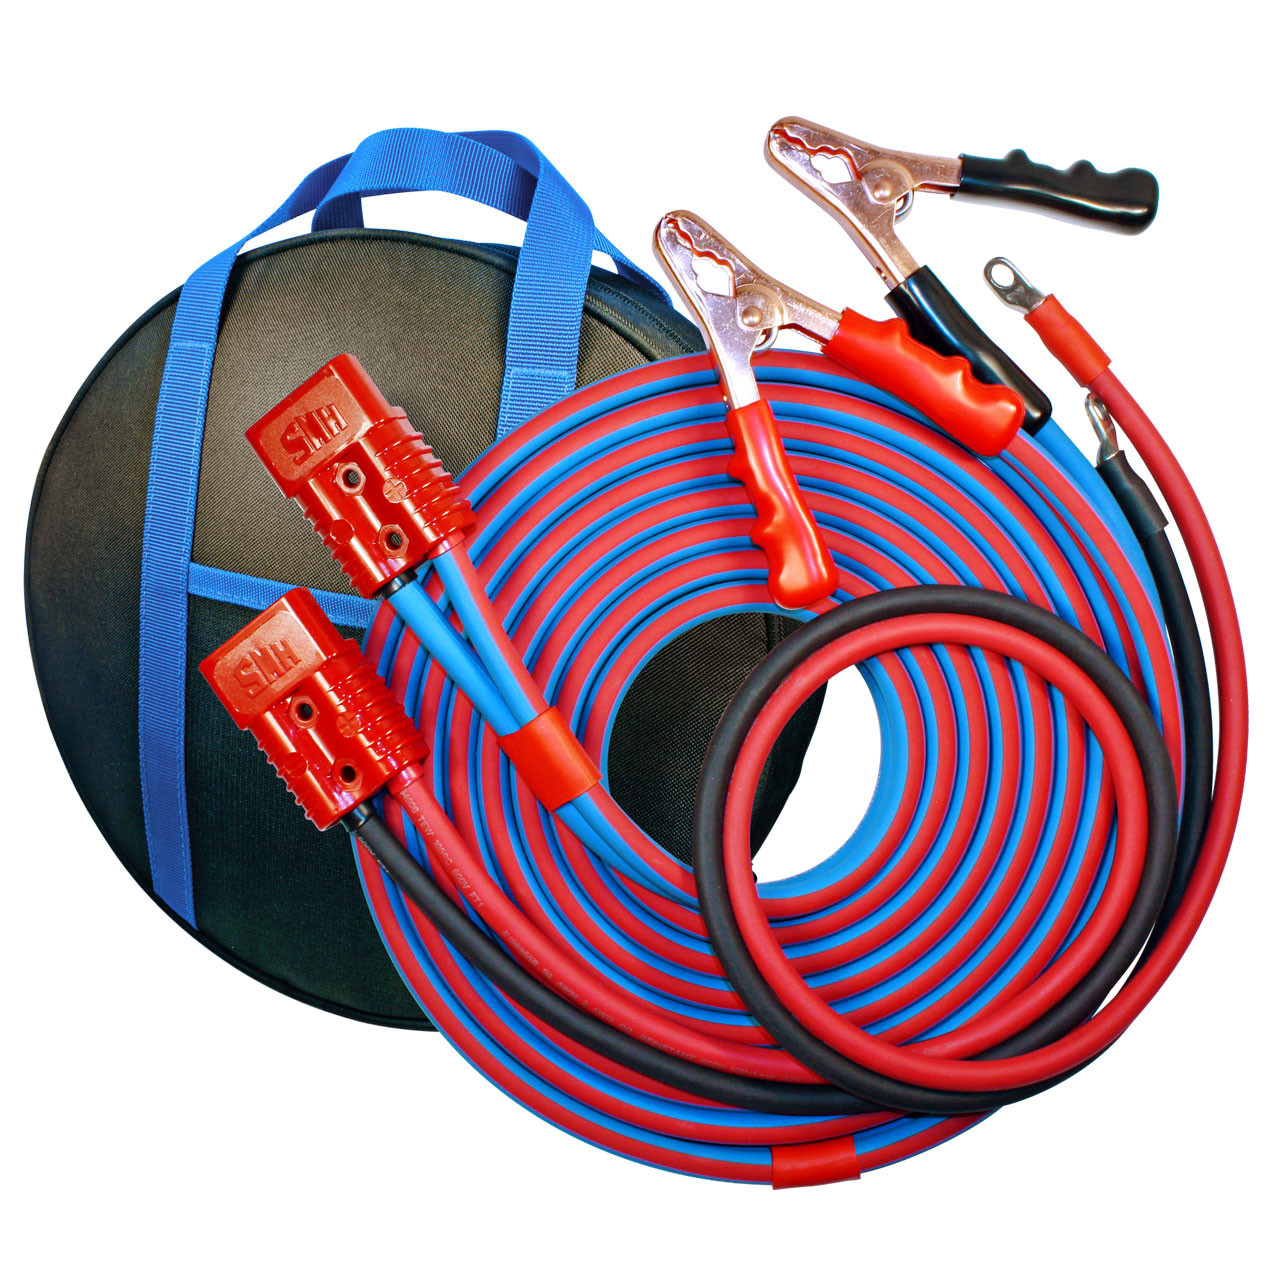 20' Cold Weather Heavy Duty Jumper Cable Clamp to Harness 2 Gauge Booster System